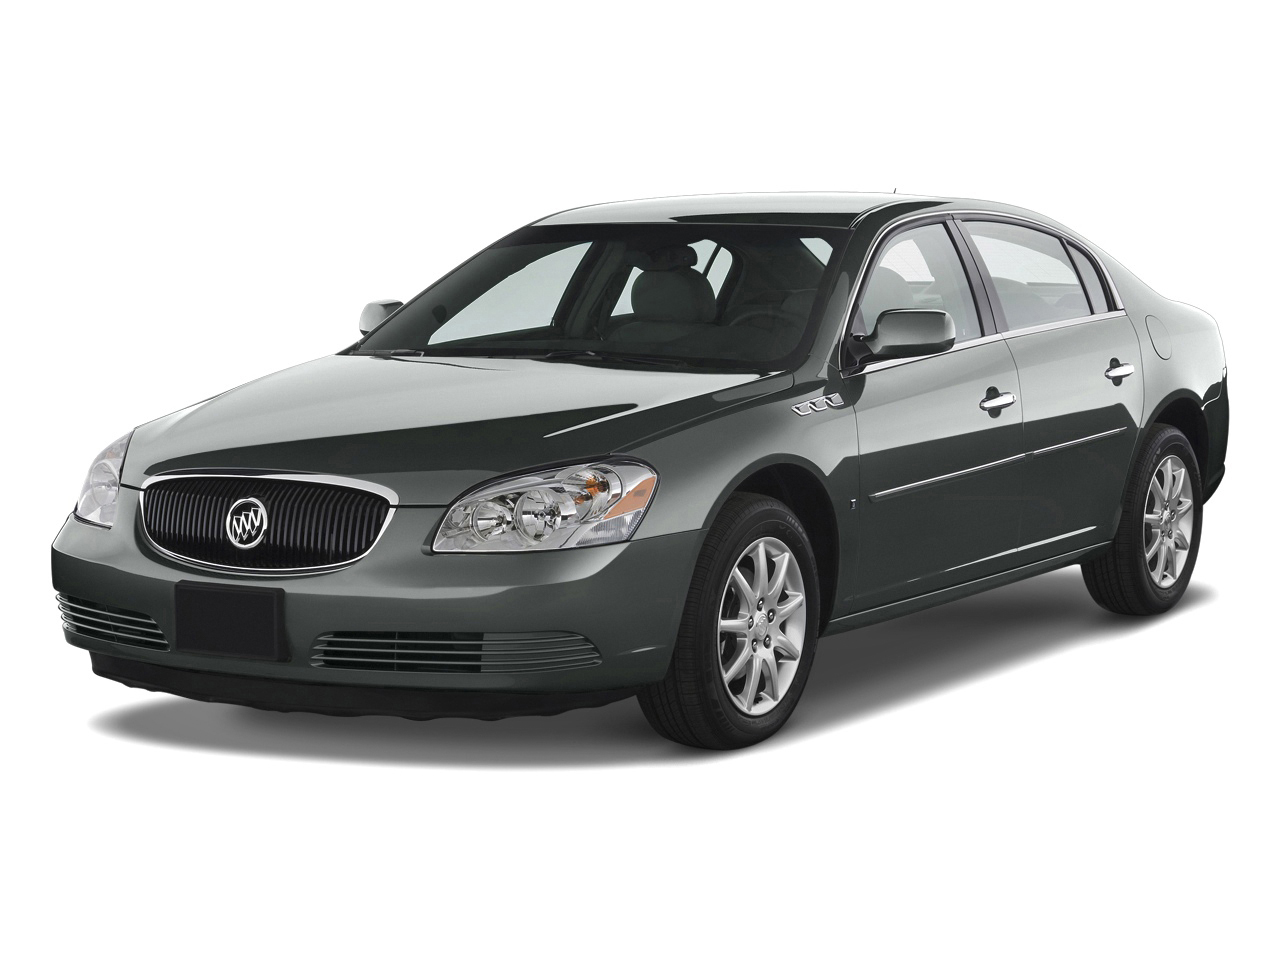 Buick Lesabre Ratings >> 2010-buick-lucerne-4-door-sedan-cxl-angular-front-exterior-view_100236571_h.jpg